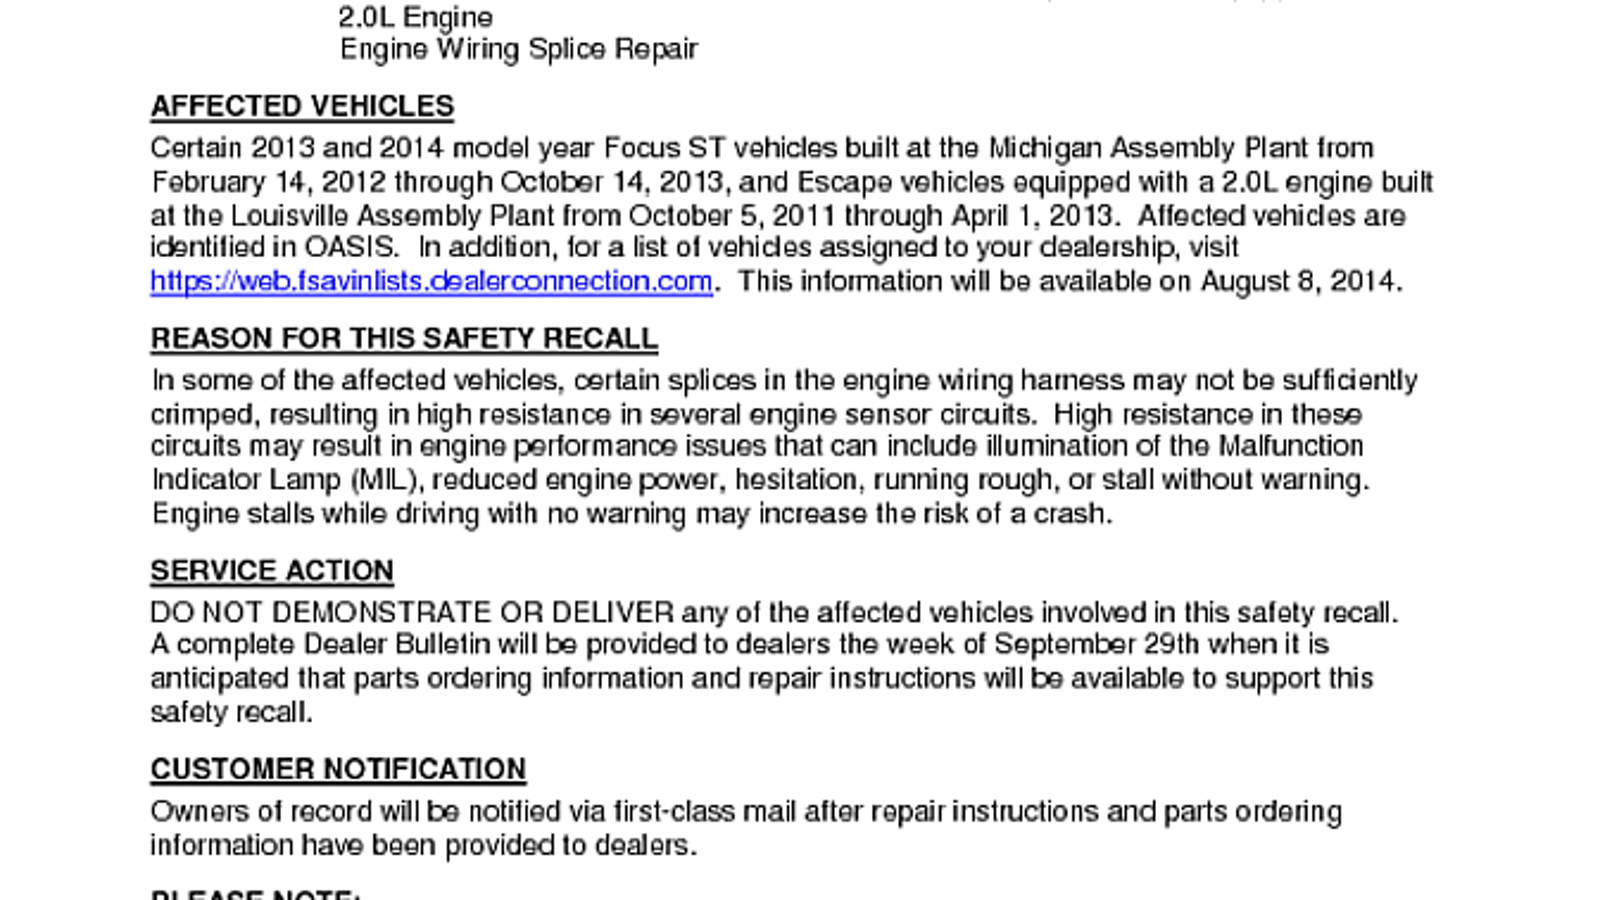 Focus St Wiring Harness Recall : Focus st owners look here wiring harness recall